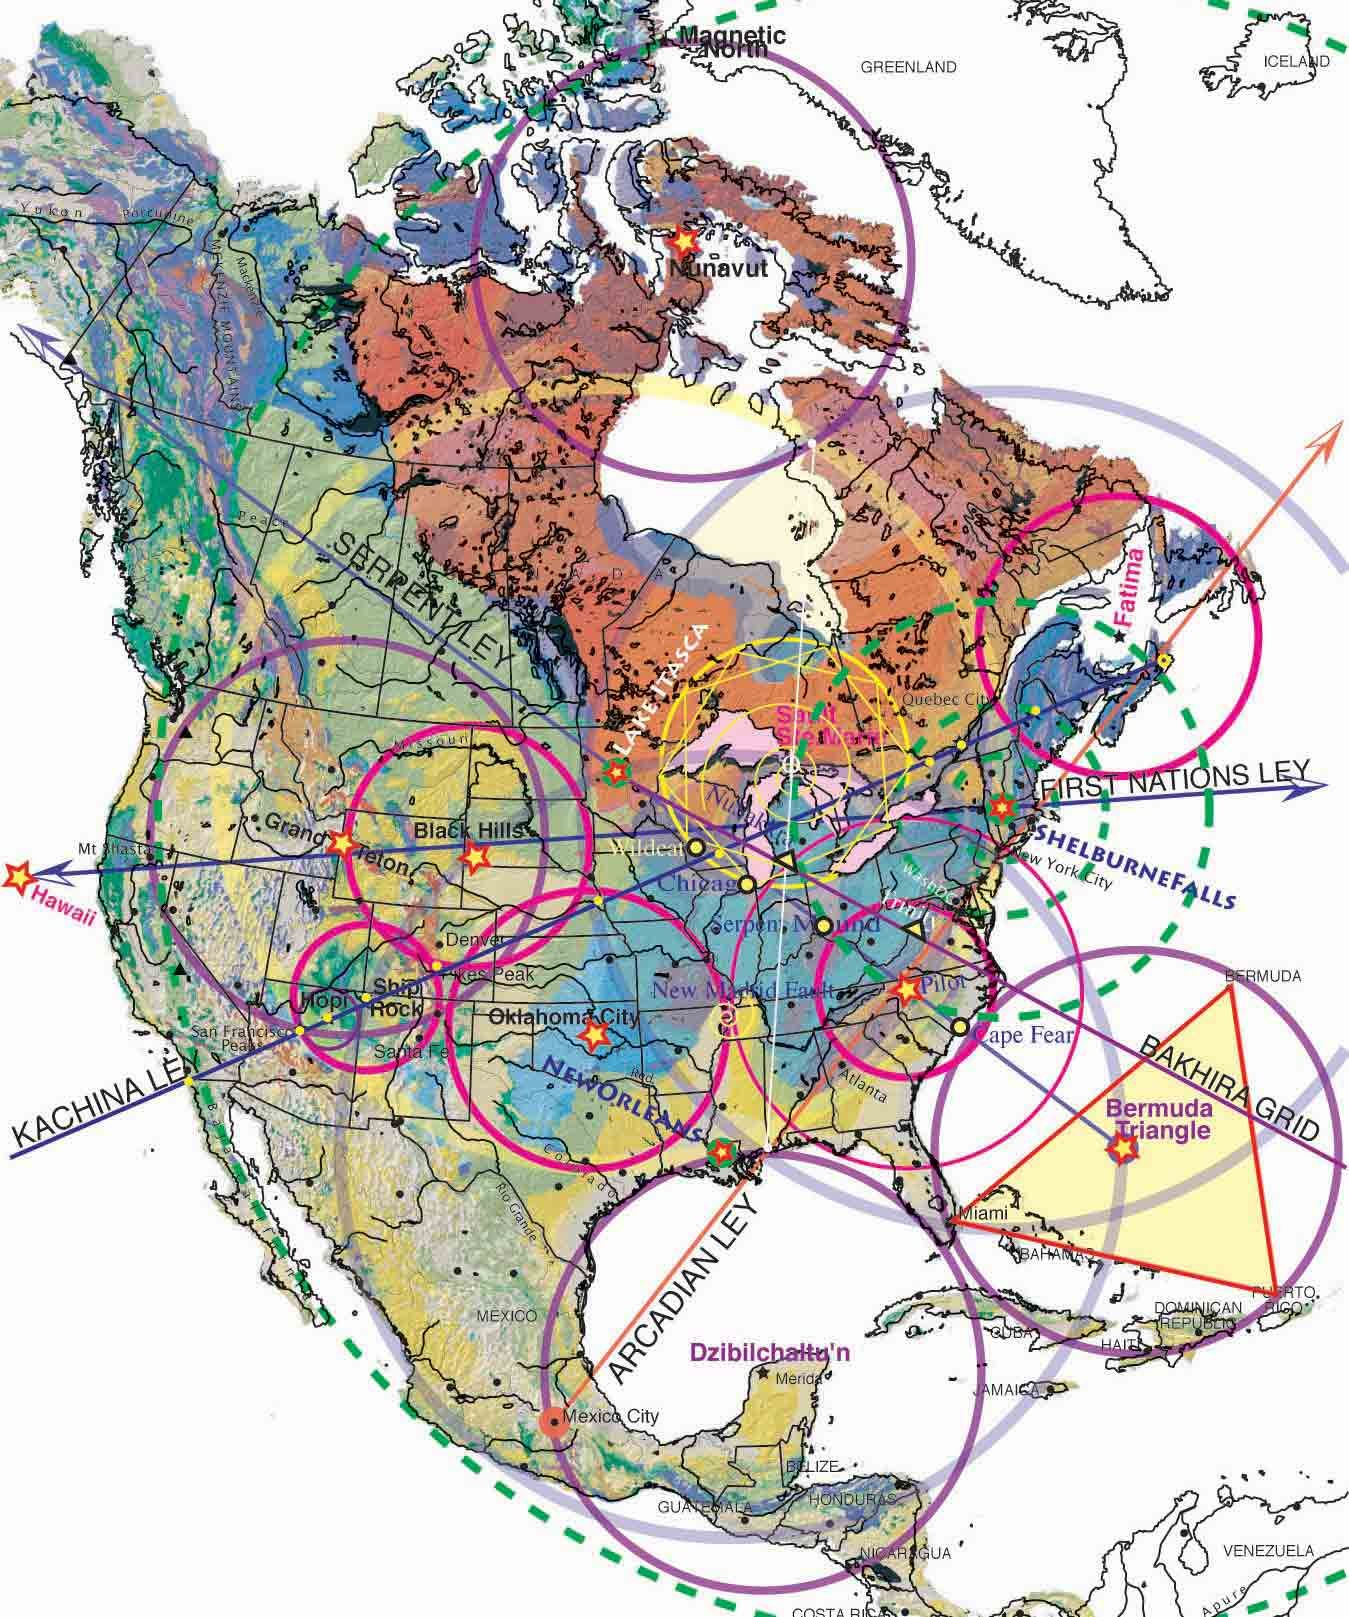 Magnetic Ley Lines In America Geology Patterns North America - Ley lines in the us map